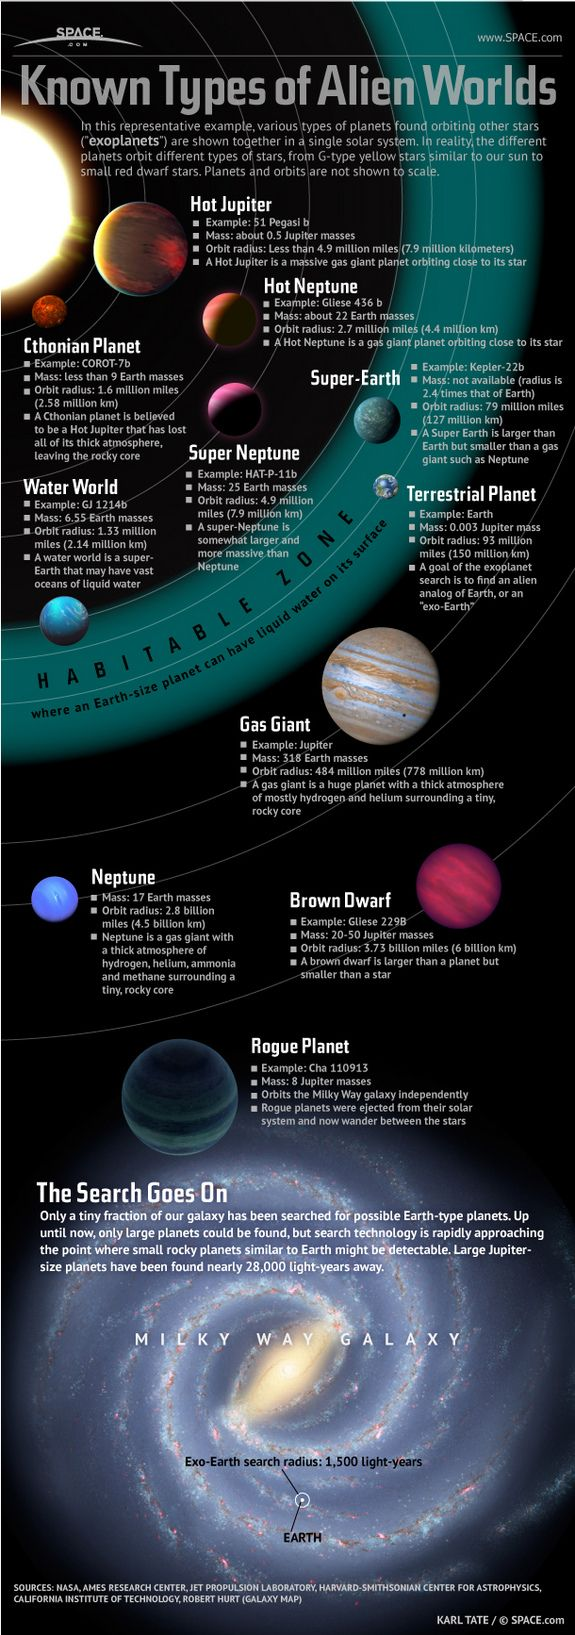 Scientists have only searched through a tiny fraction of our galaxy, and with the fast advances in technology, we can expect many more interesting discoveries in the future. But for now, check out the handy infographic below, courtesy of Space.com, displaying all known types of alien worlds.